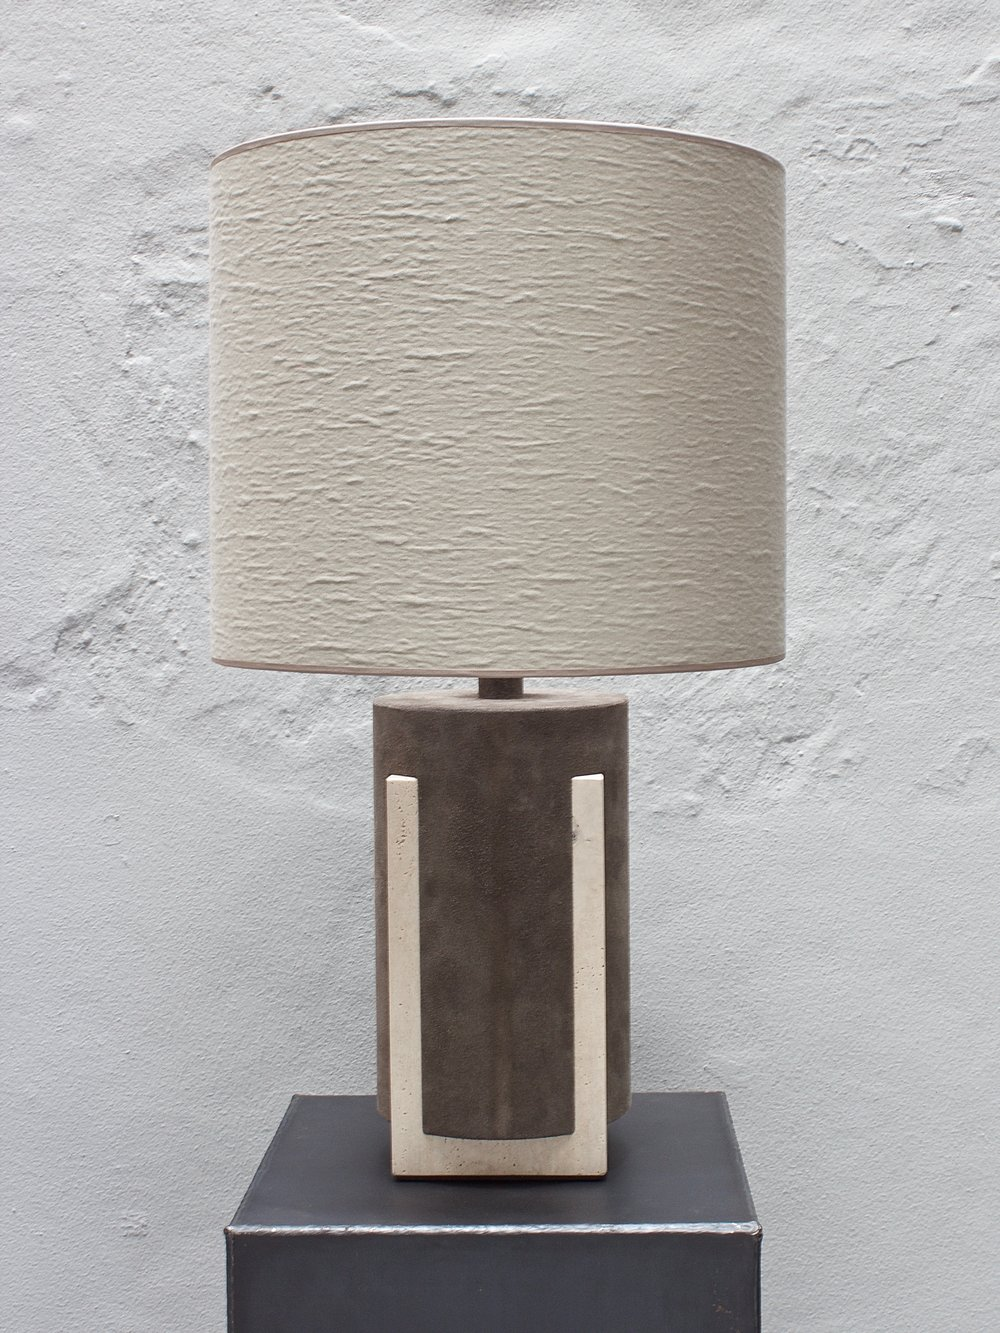 Palazzo Table Lamp <i><br>from 16.900 DKK</i></br>